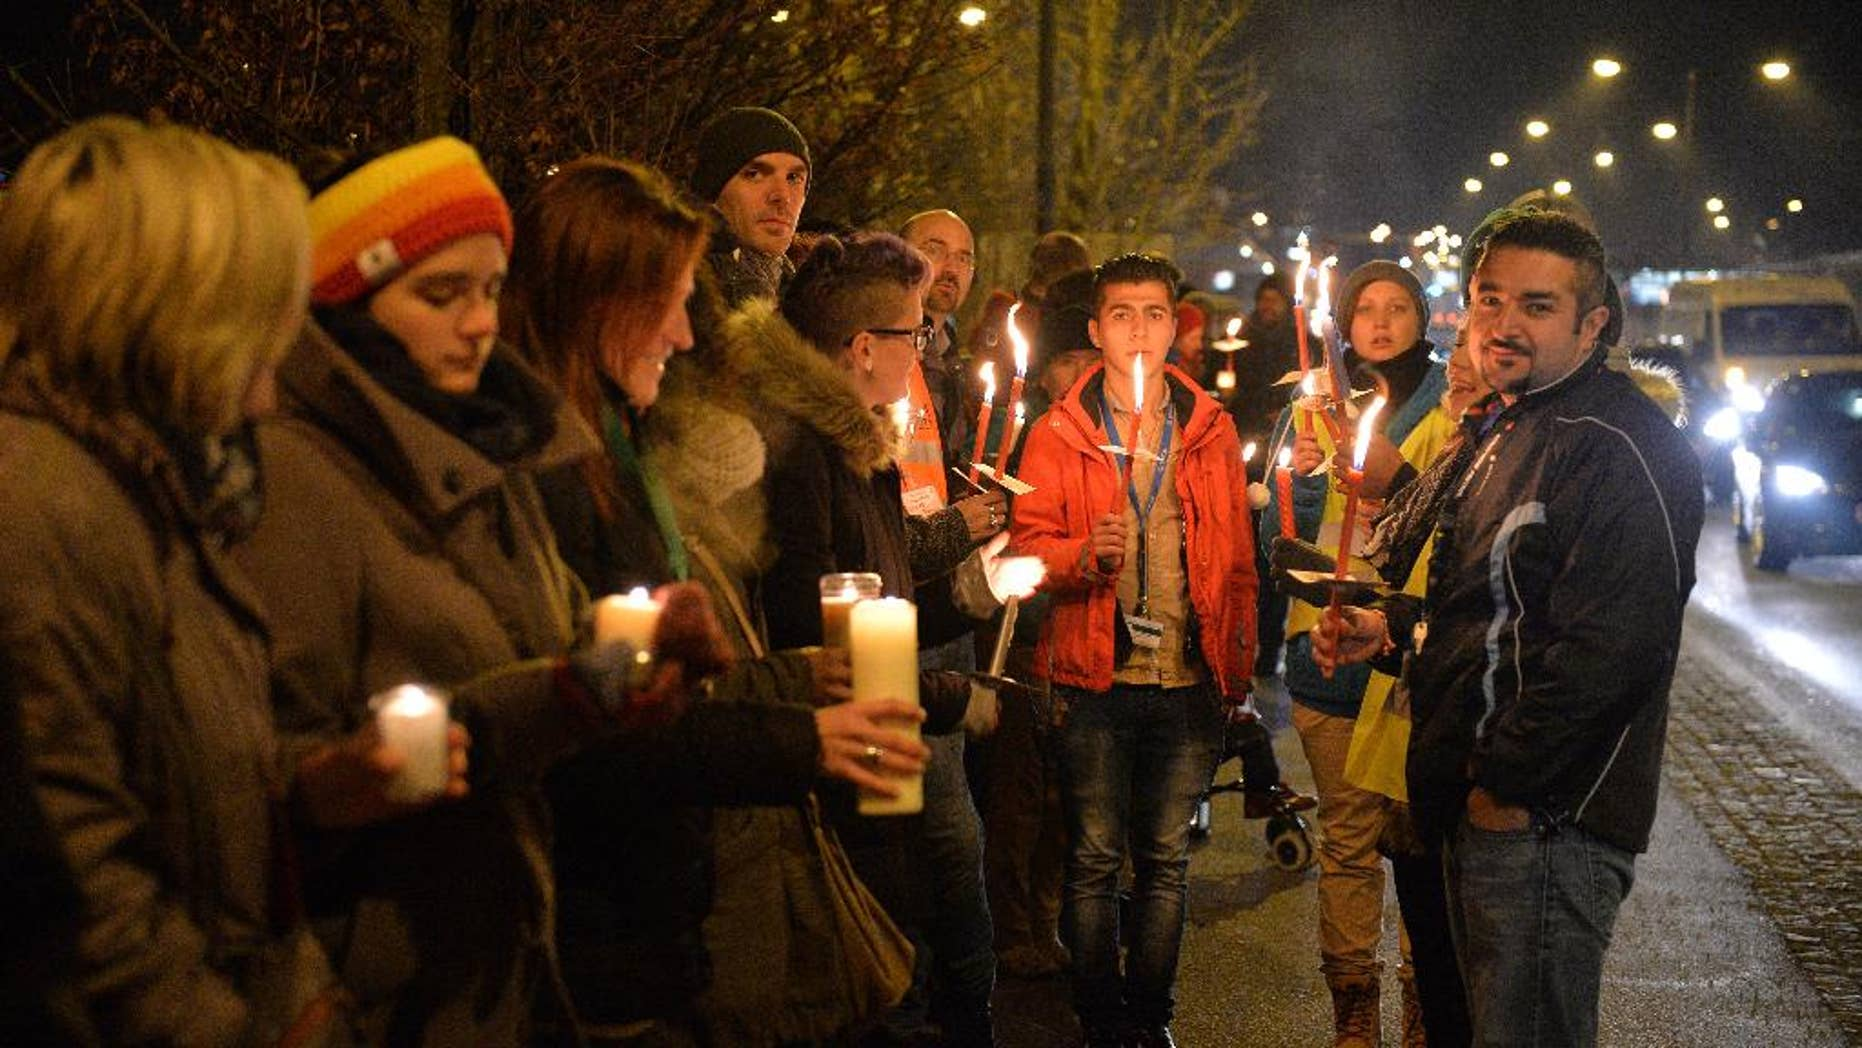 """Participants with candles and torches stand on a bridge at the border between Austria and Germany during a demonstration for """"Human refugee policy in a Europe without borders"""" in support of migrants, in Salzburg, Austria, Monday, Dec. 14, 2015. (AP Photo/Kerstin Joensson)"""